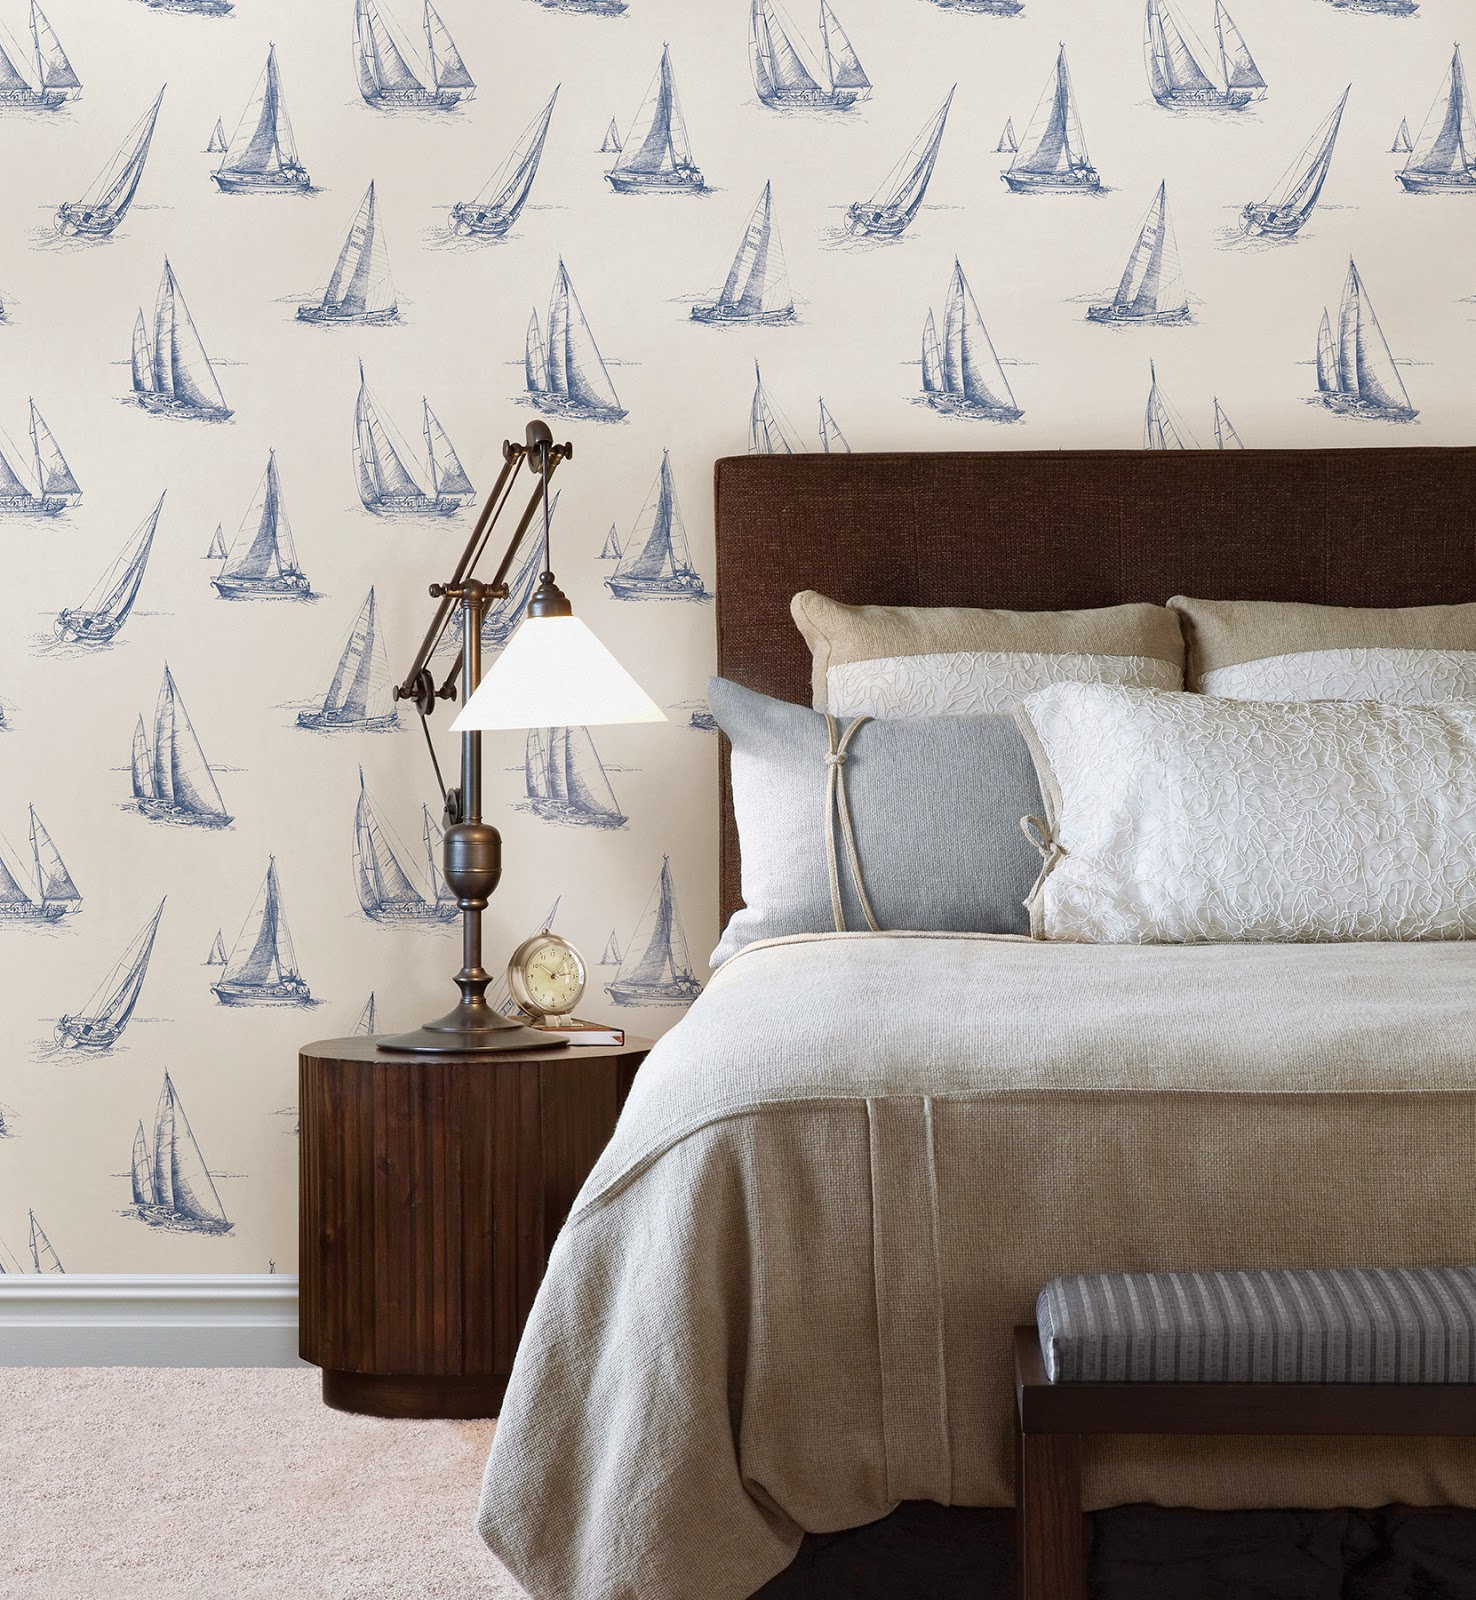 https://www.wallcoveringsforless.com/shoppingcart/prodlist1.CFM?page=_prod_detail.cfm&product_id=45066&startrow=13&search=oxford&pagereturn=_search.cfm